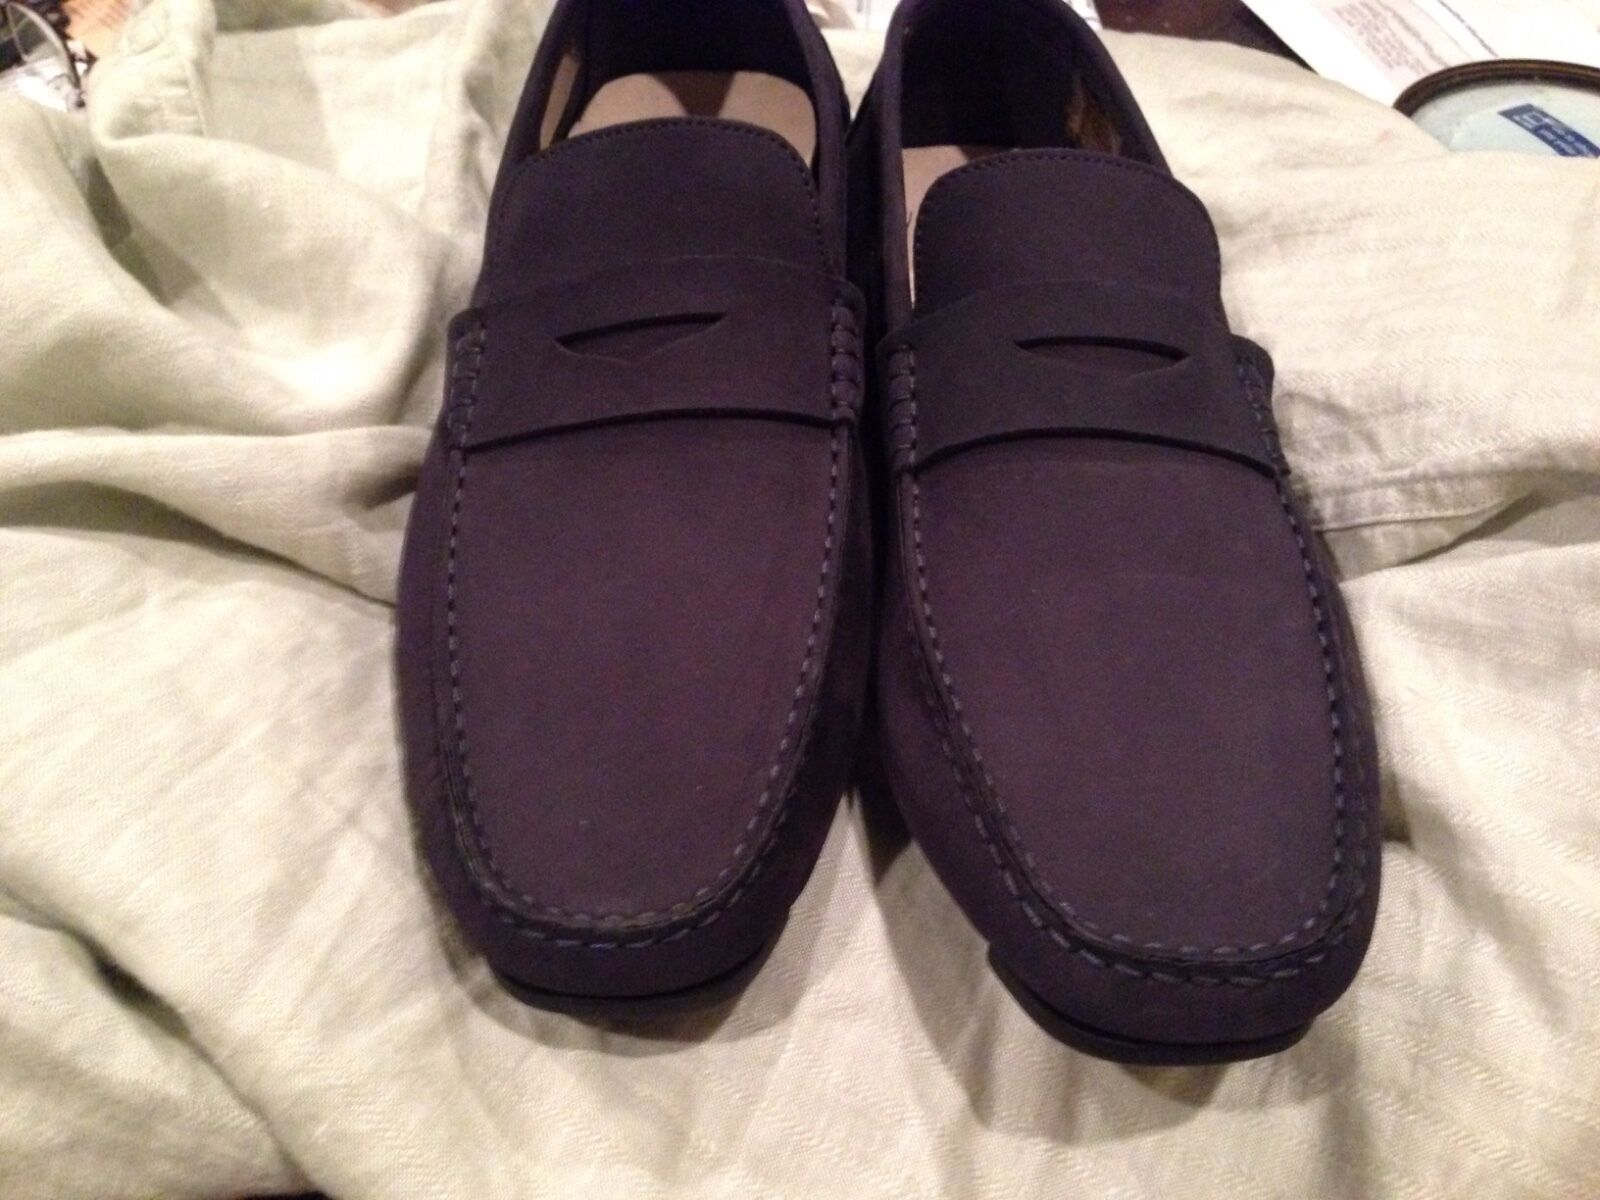 LOVITO Blue suede  Driving Loafers Moccasins New 11 US 44 Euro